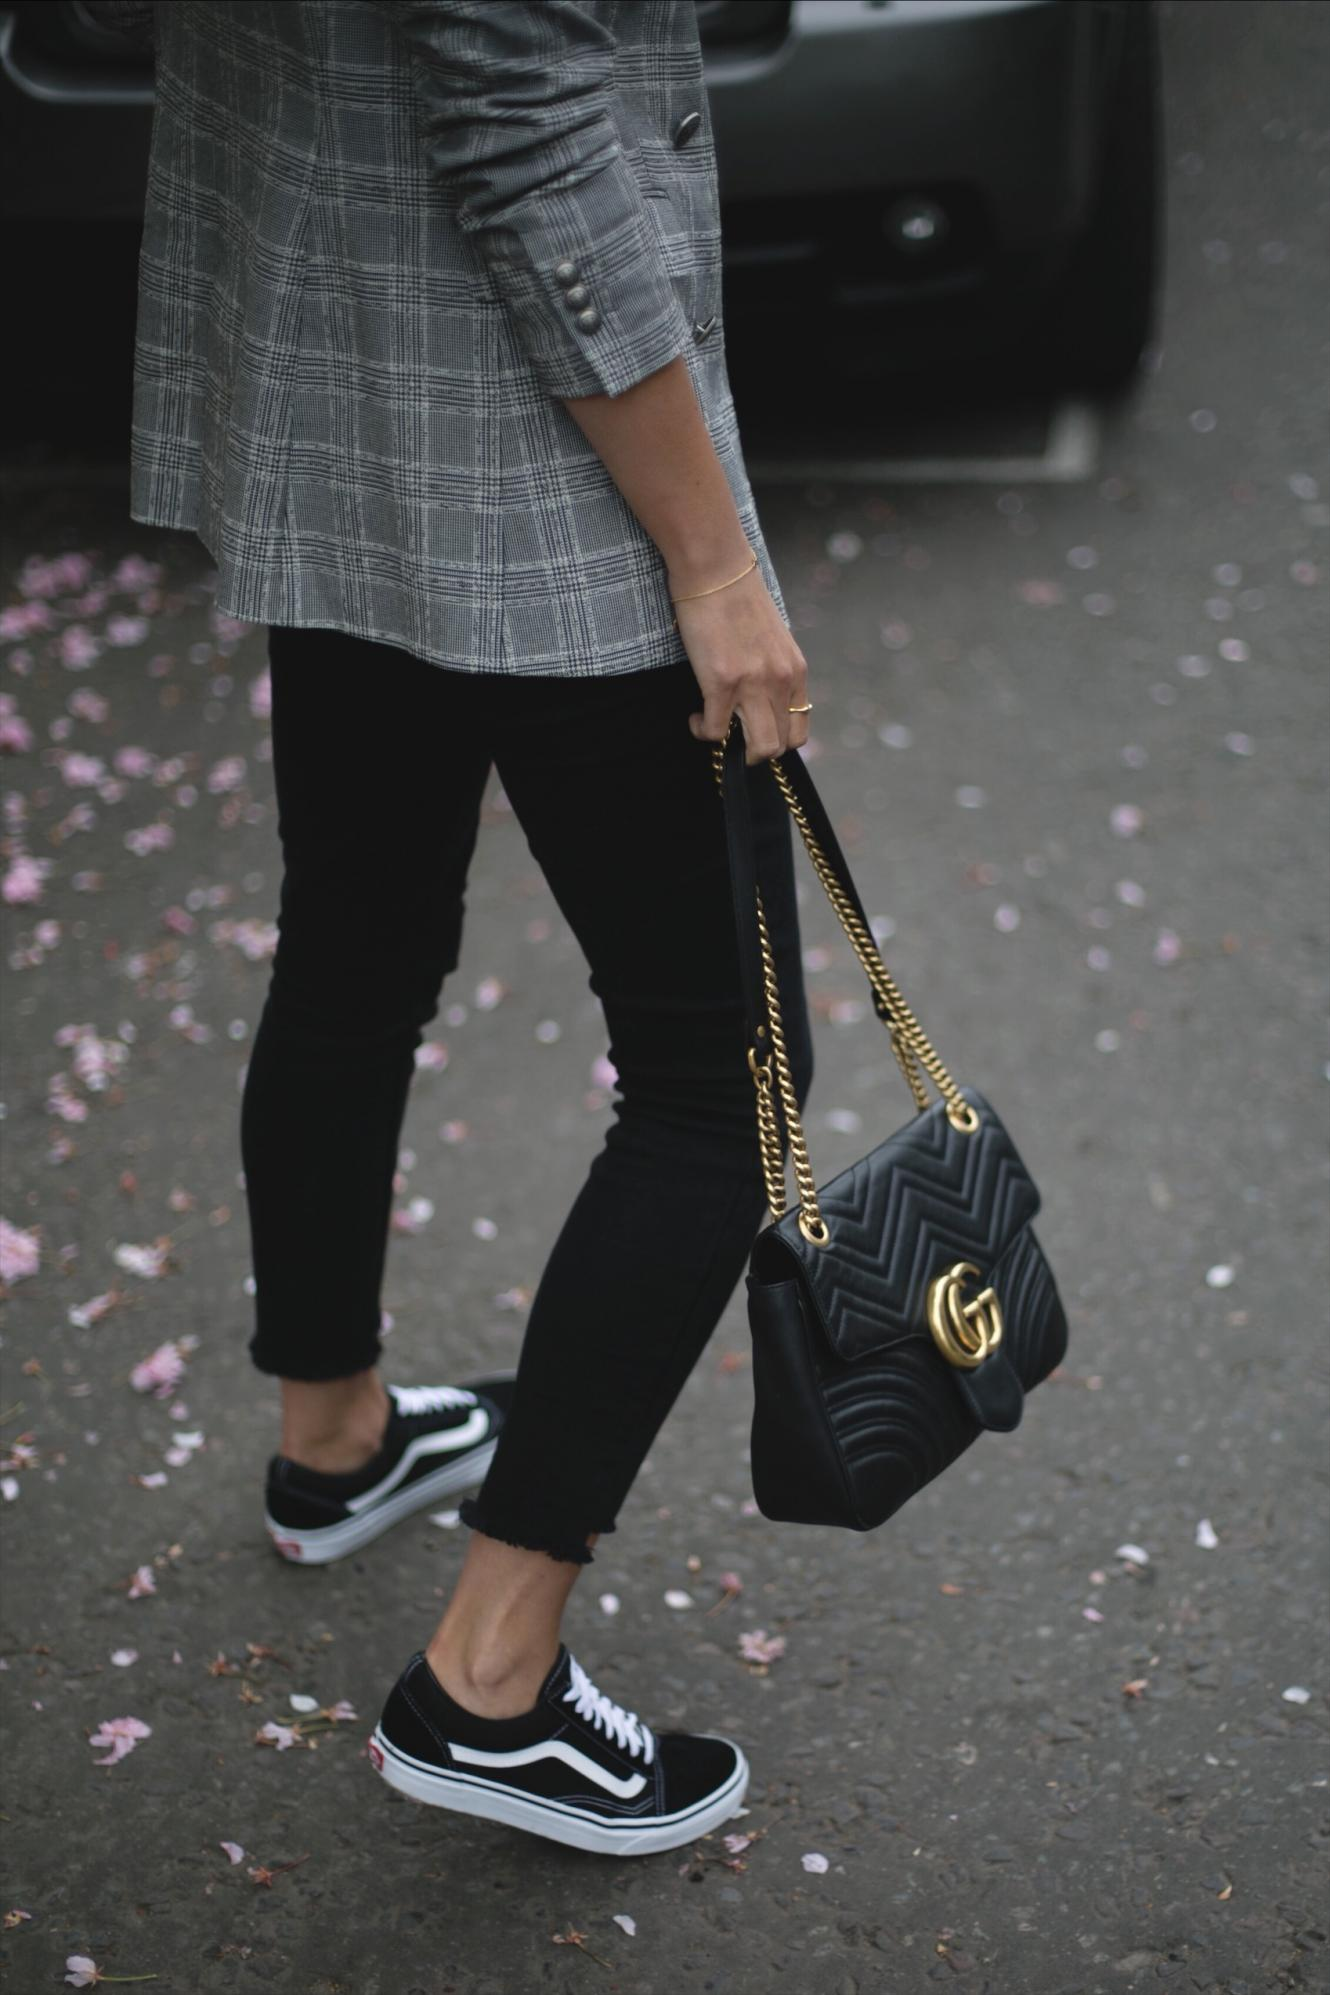 Vans old skool, stepped hem black skinny jeans, check blazer, Gucci Marmont bag, casual outfit